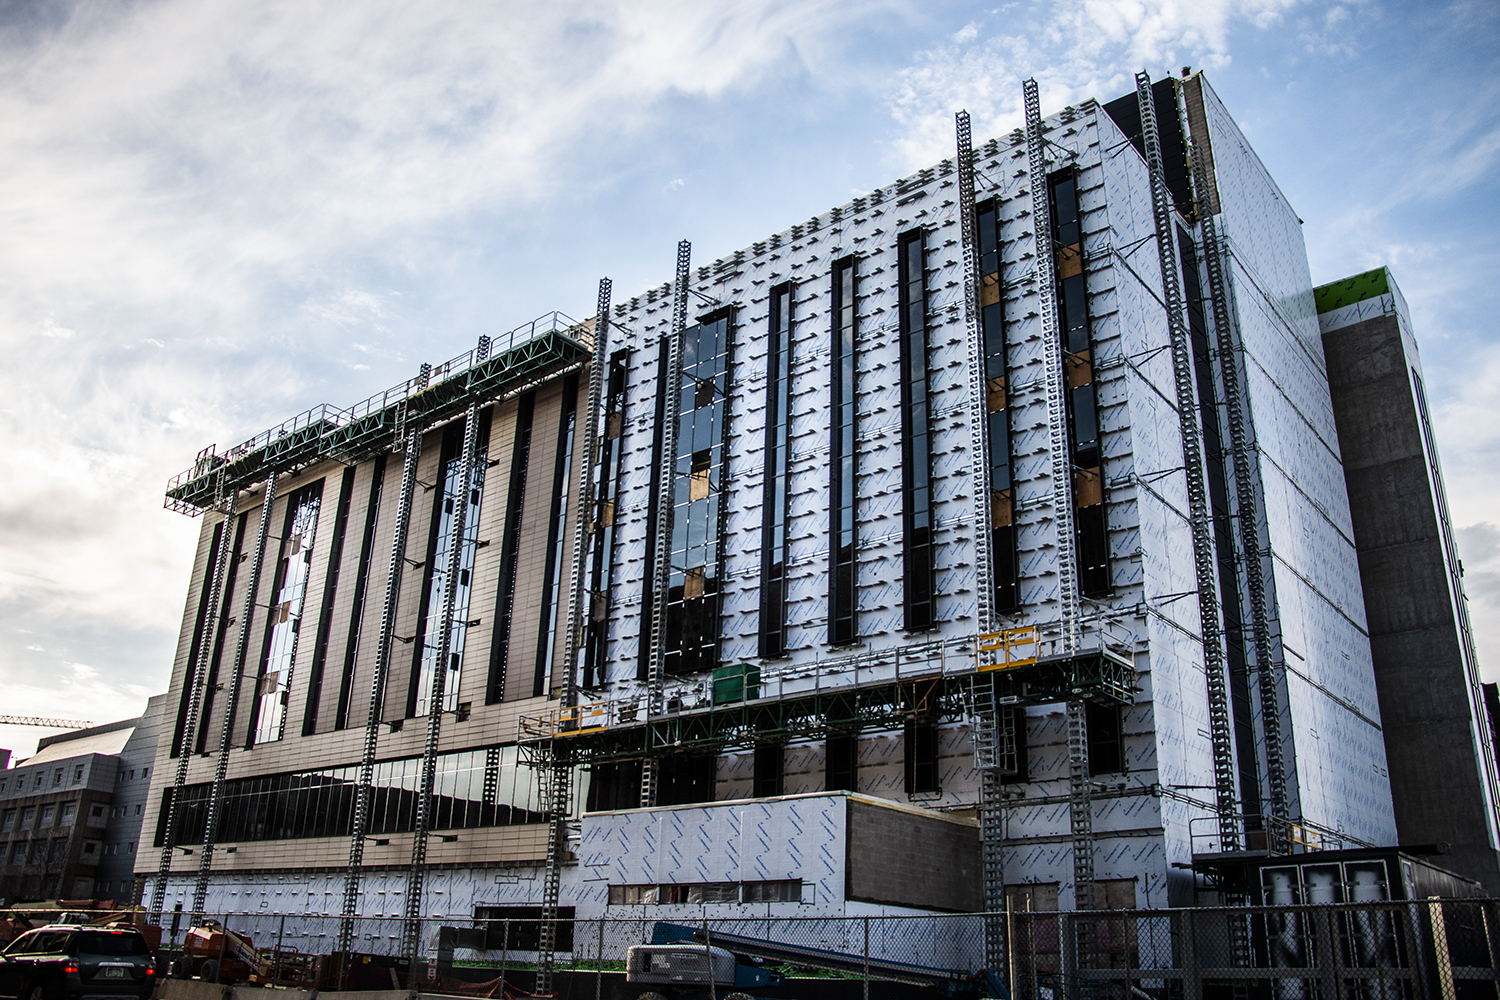 The new College of Pharmacy building, which is currently being constructed, is seen on Tuesday, April 16, 2019.